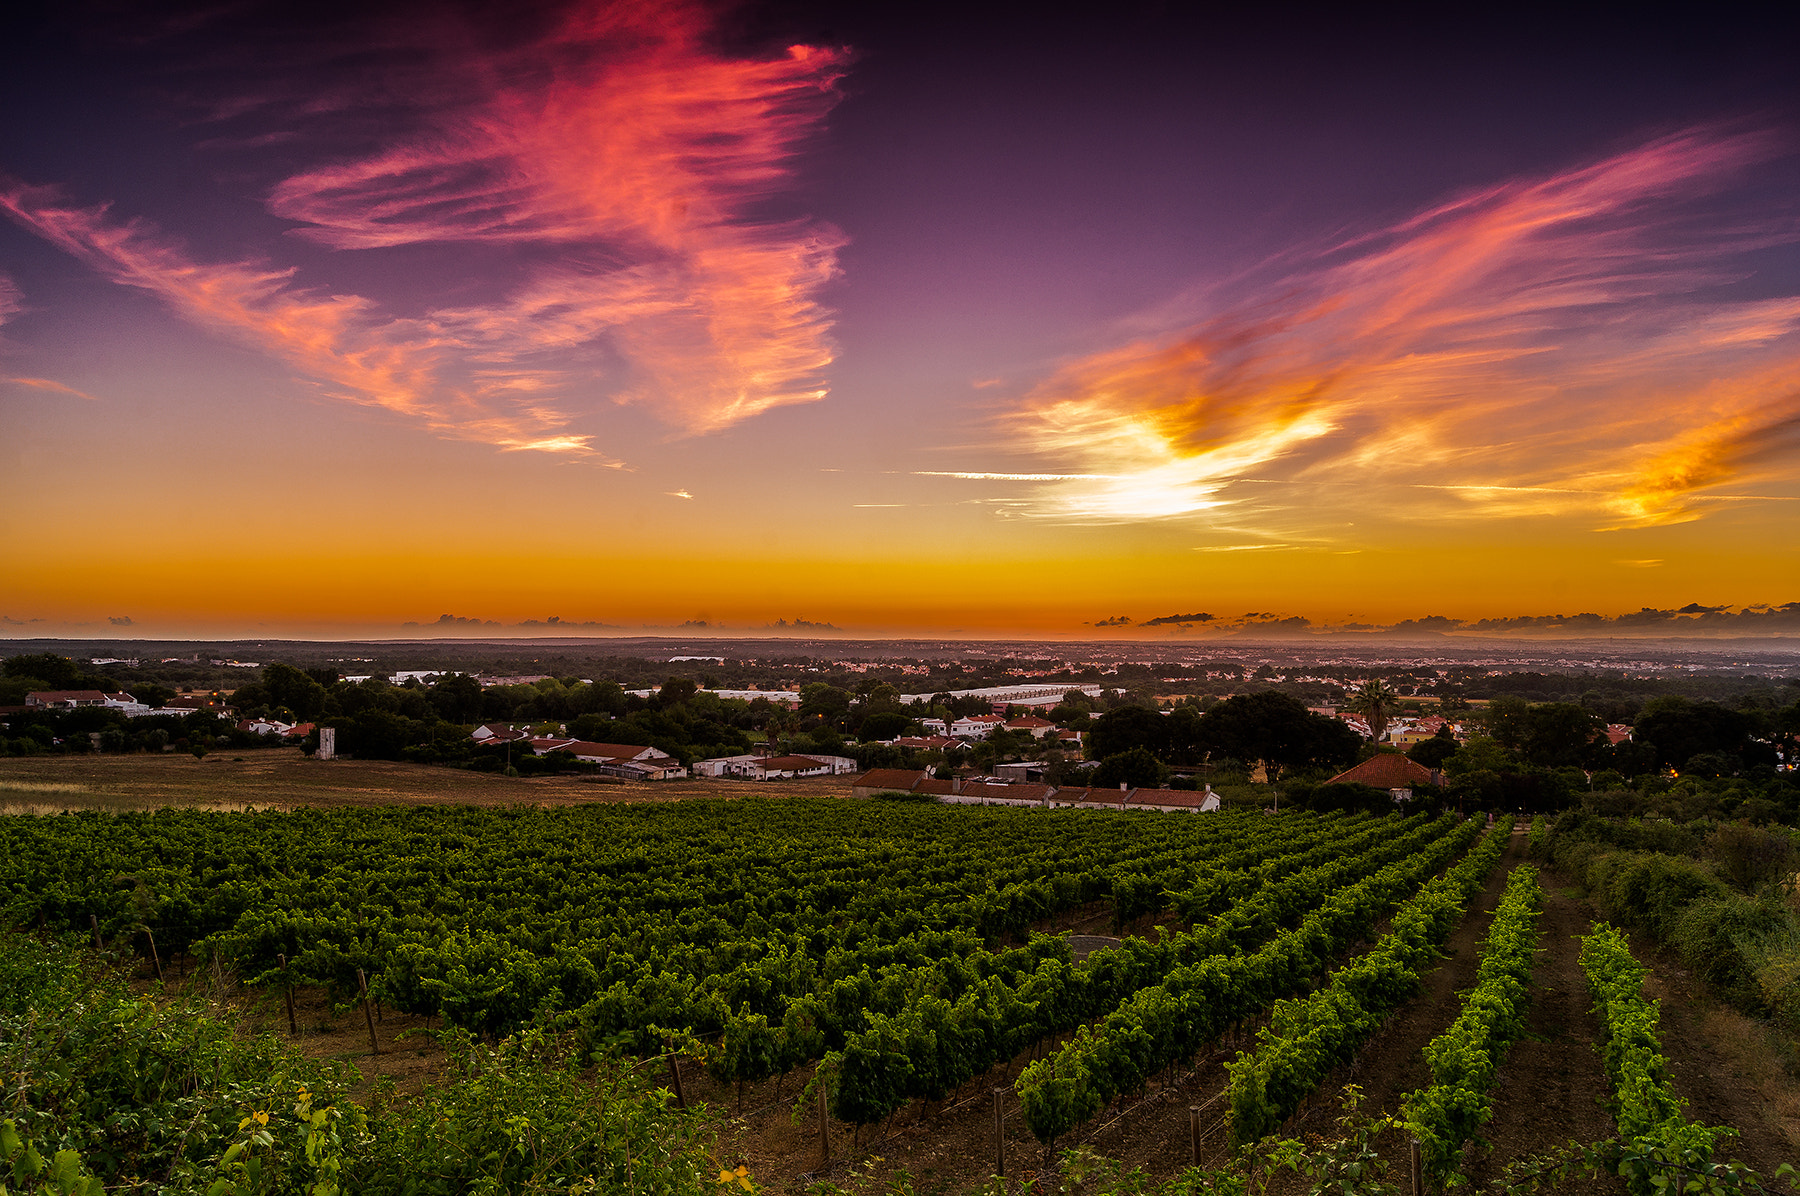 Photograph Magic sky II by Emanuel Fernandes on 500px